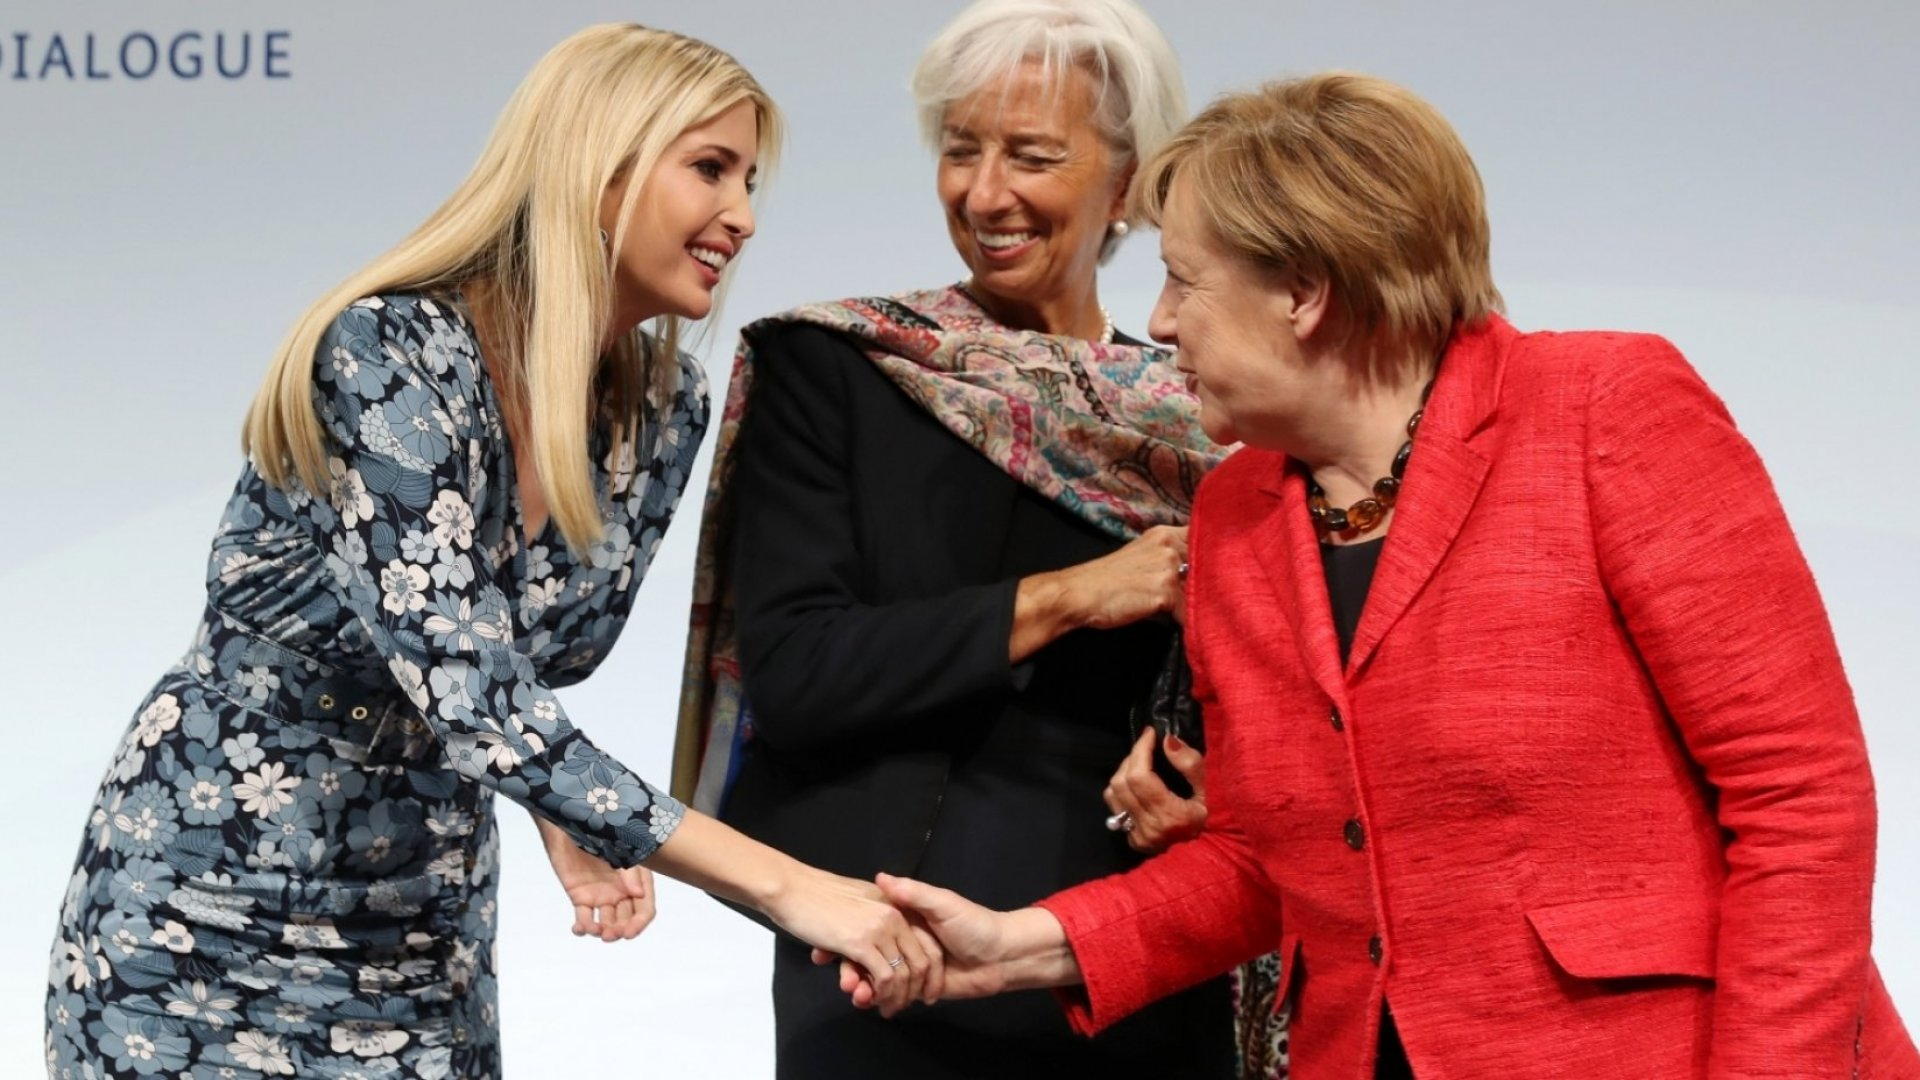 Ivanka Trump Vows to Push 'Incremental, Positive Change' for Women in the U.S.